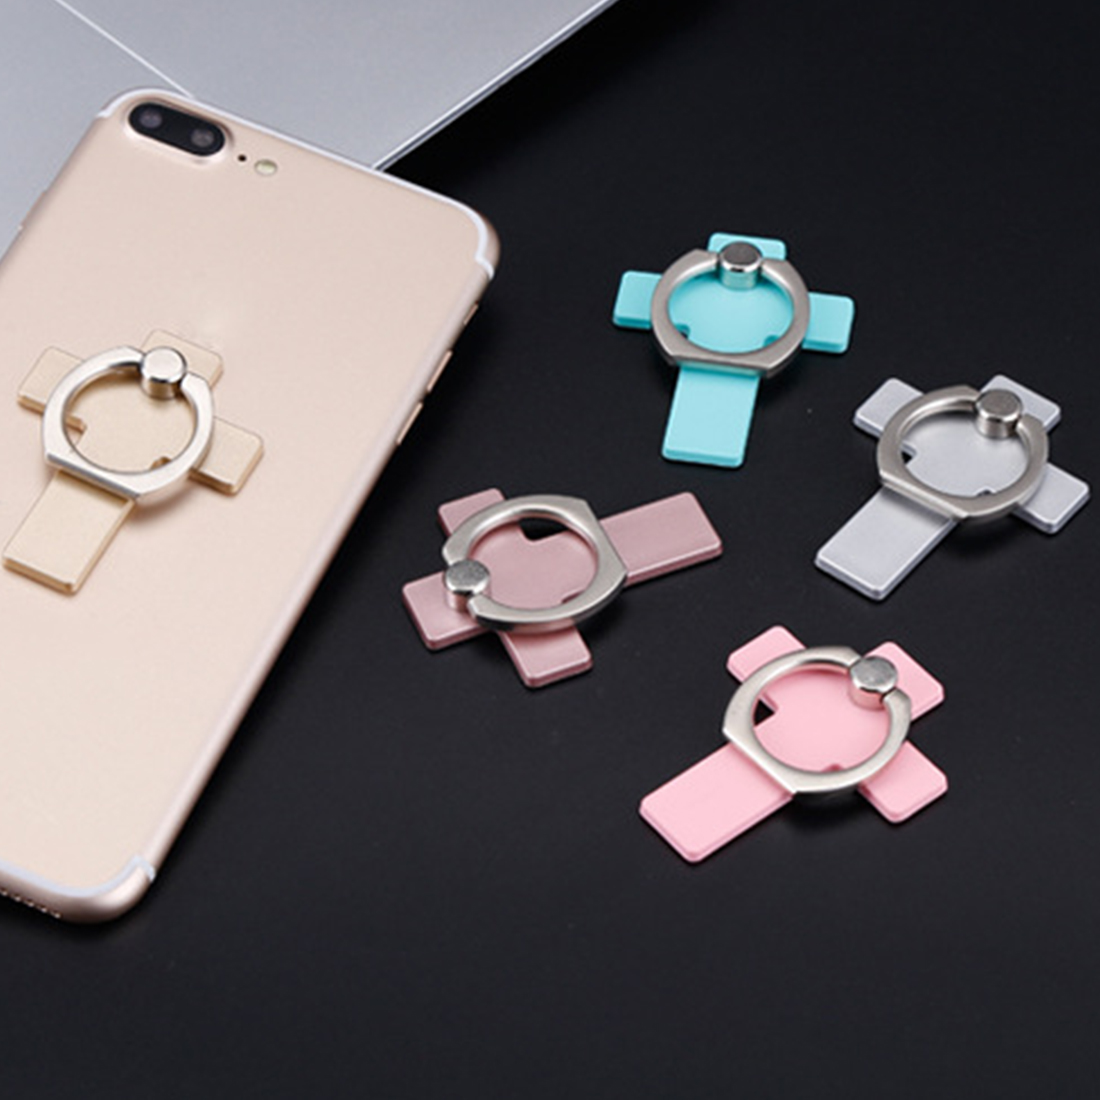 Etmakit New 360 Degree cross Metal Finger Ring Smartphone Stand Holder mobile phone holder stand For iPhone iPad Xiaomi huawei